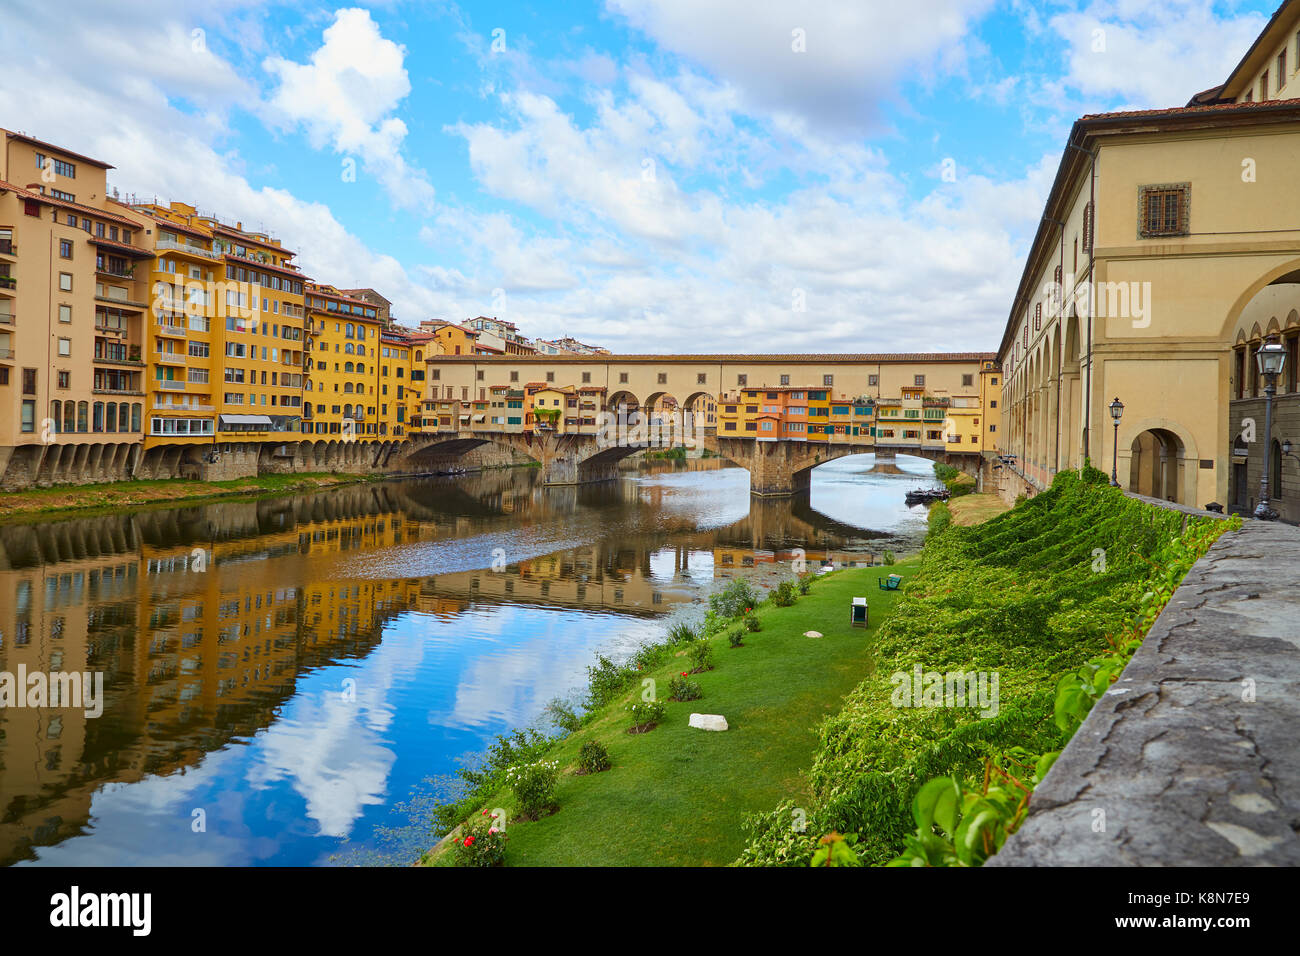 Ponte Vecchio Bridge in a summer sunny day without people - Stock Image